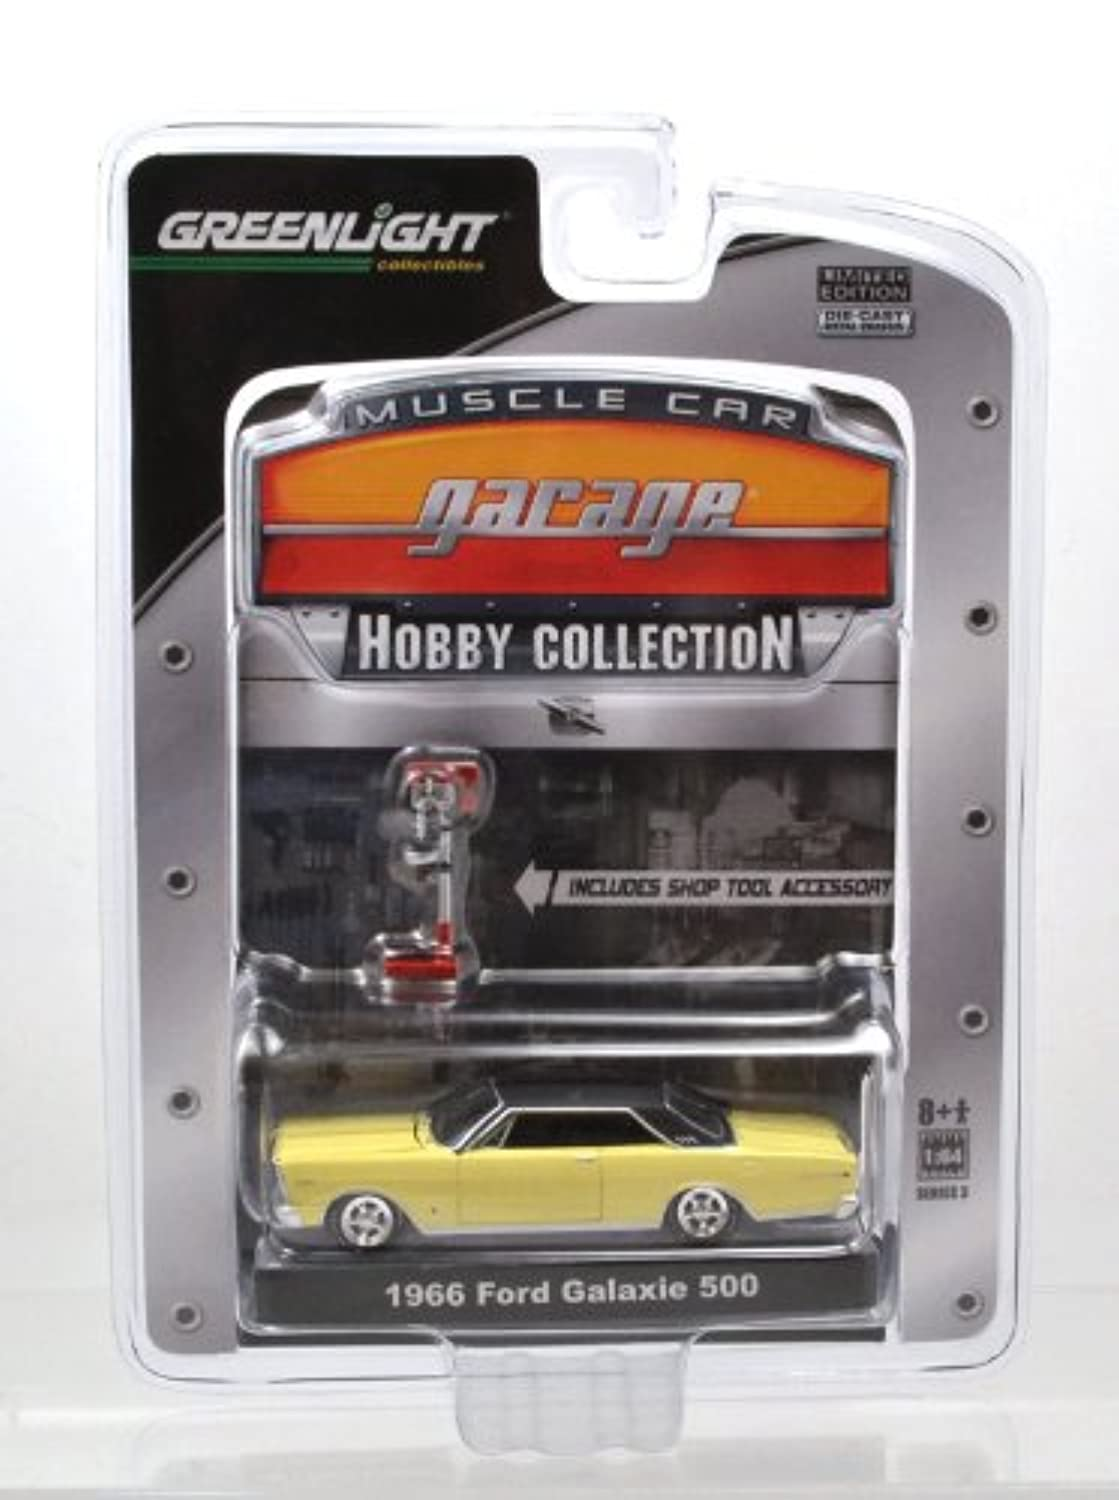 GREENLIGHT 1:64 MUSCLE CAR